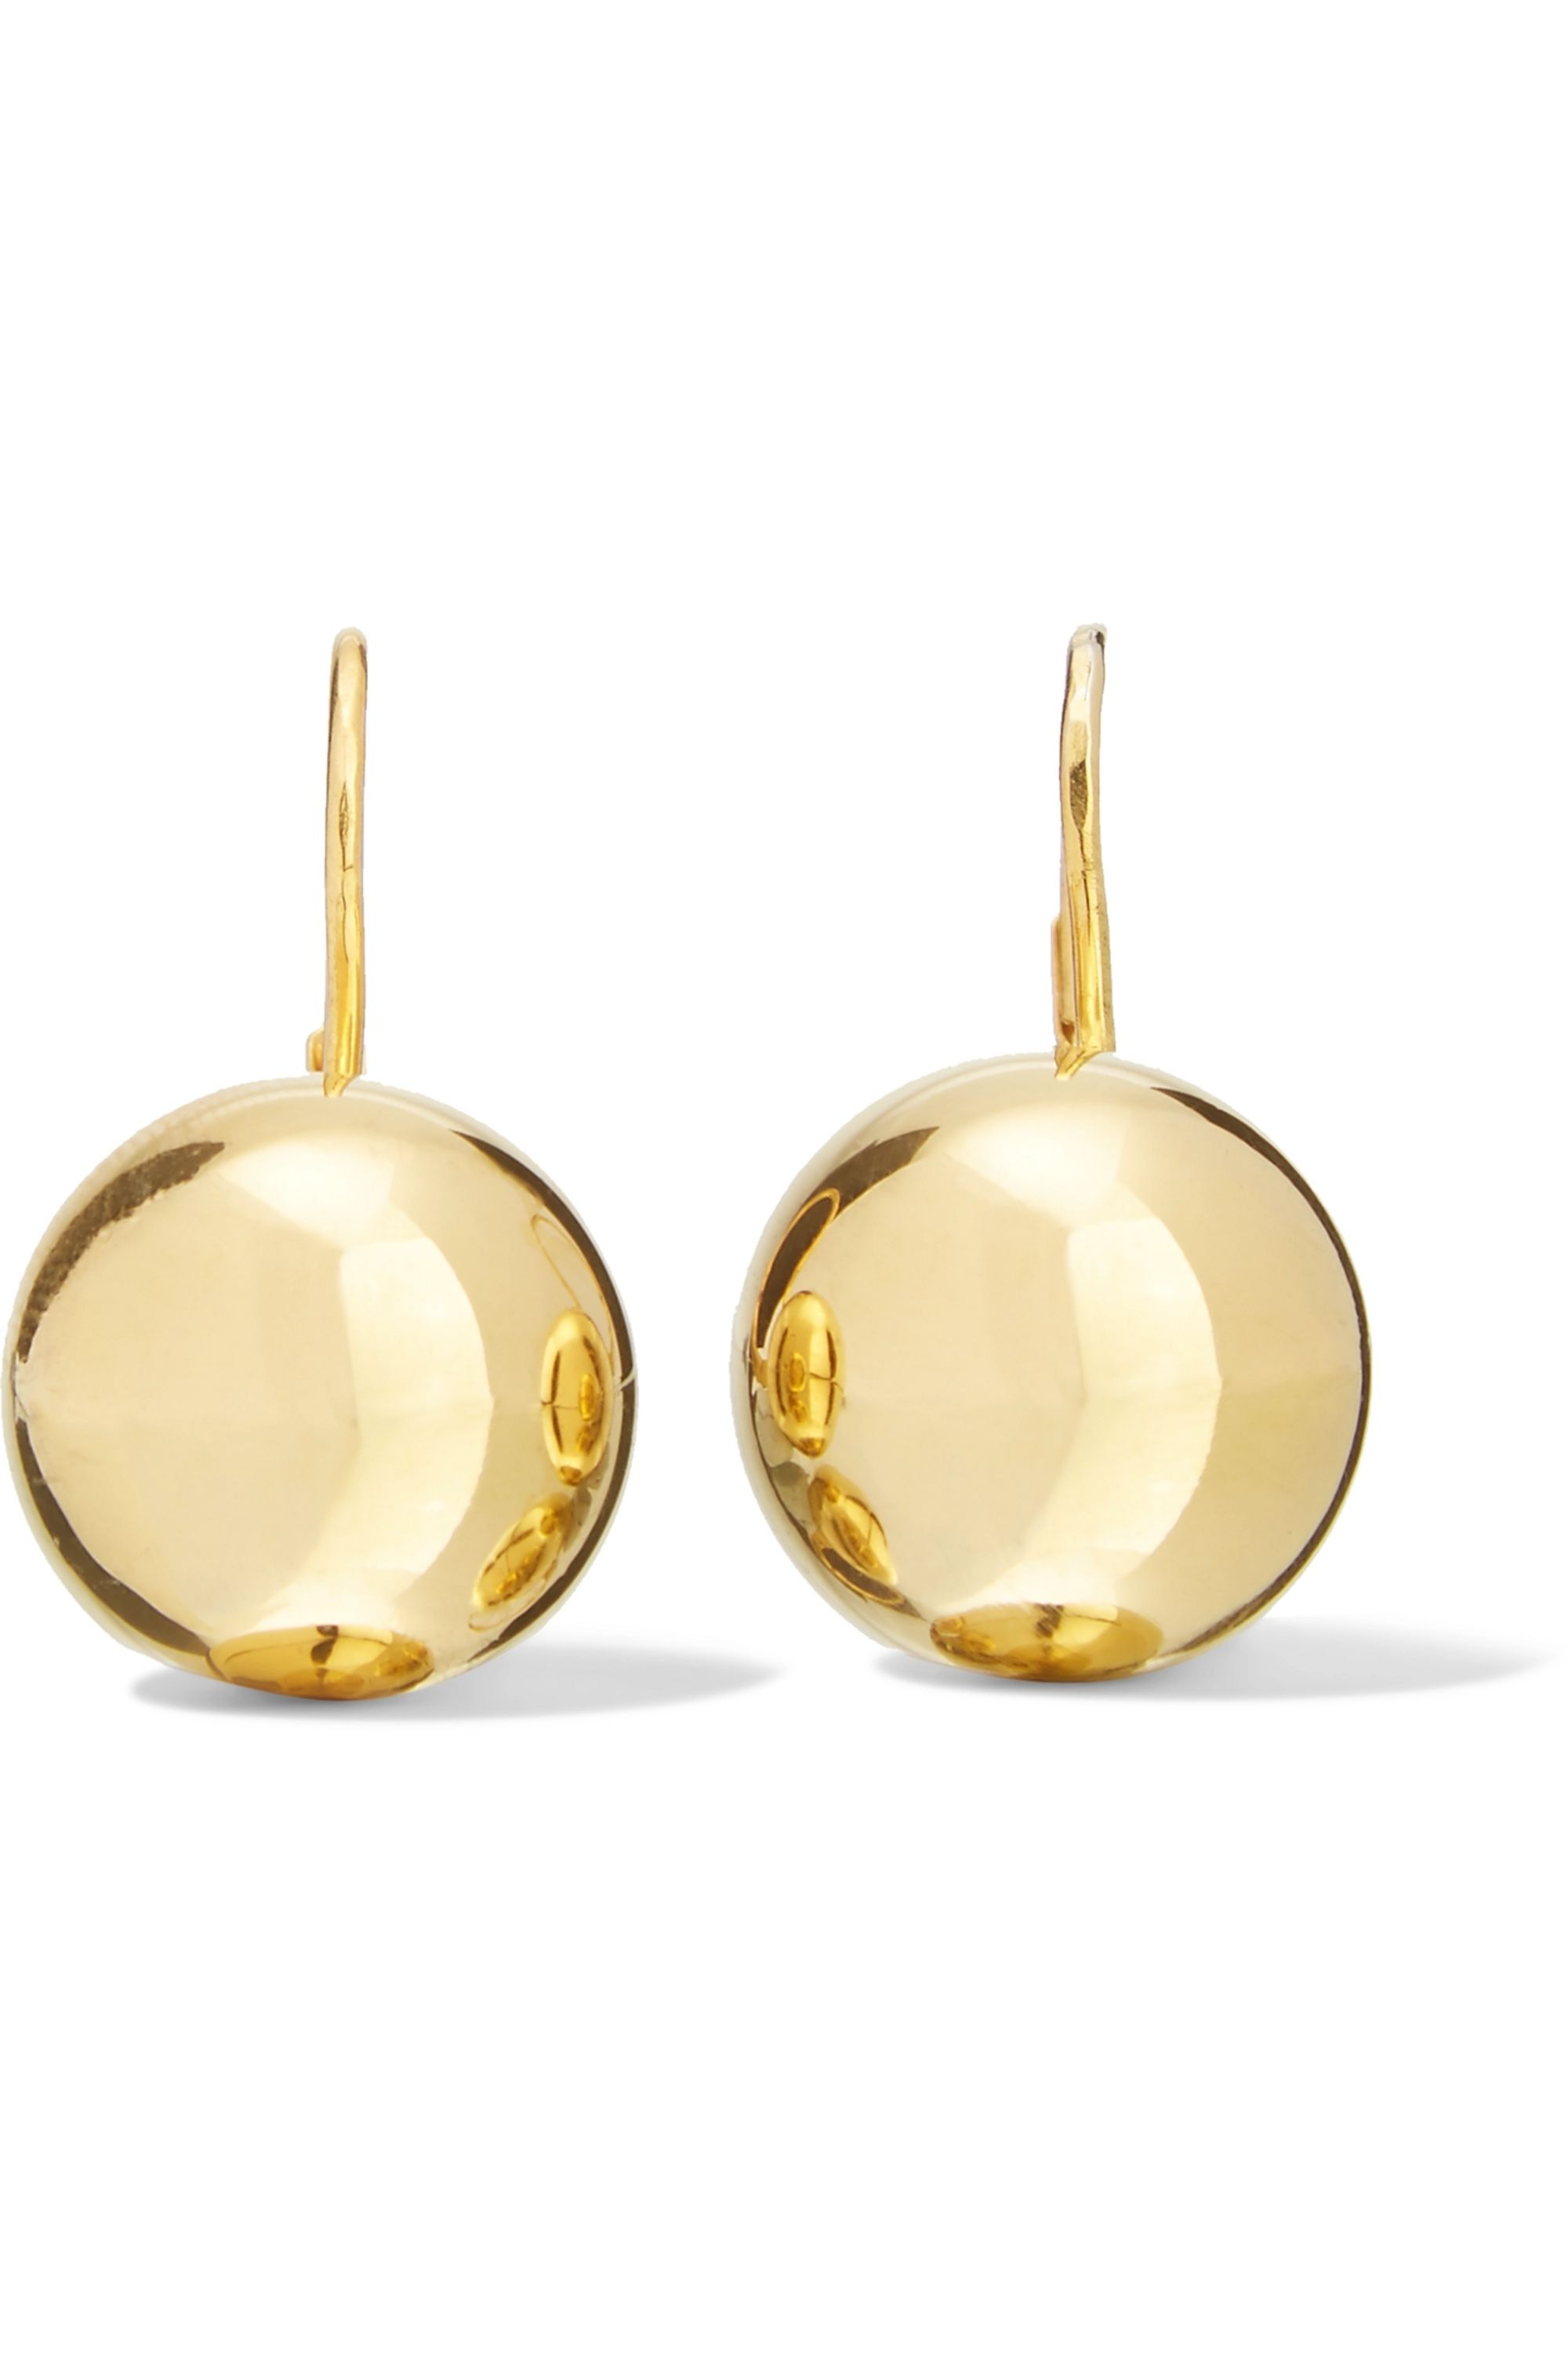 Sophie Buhai Gold-plated earrings